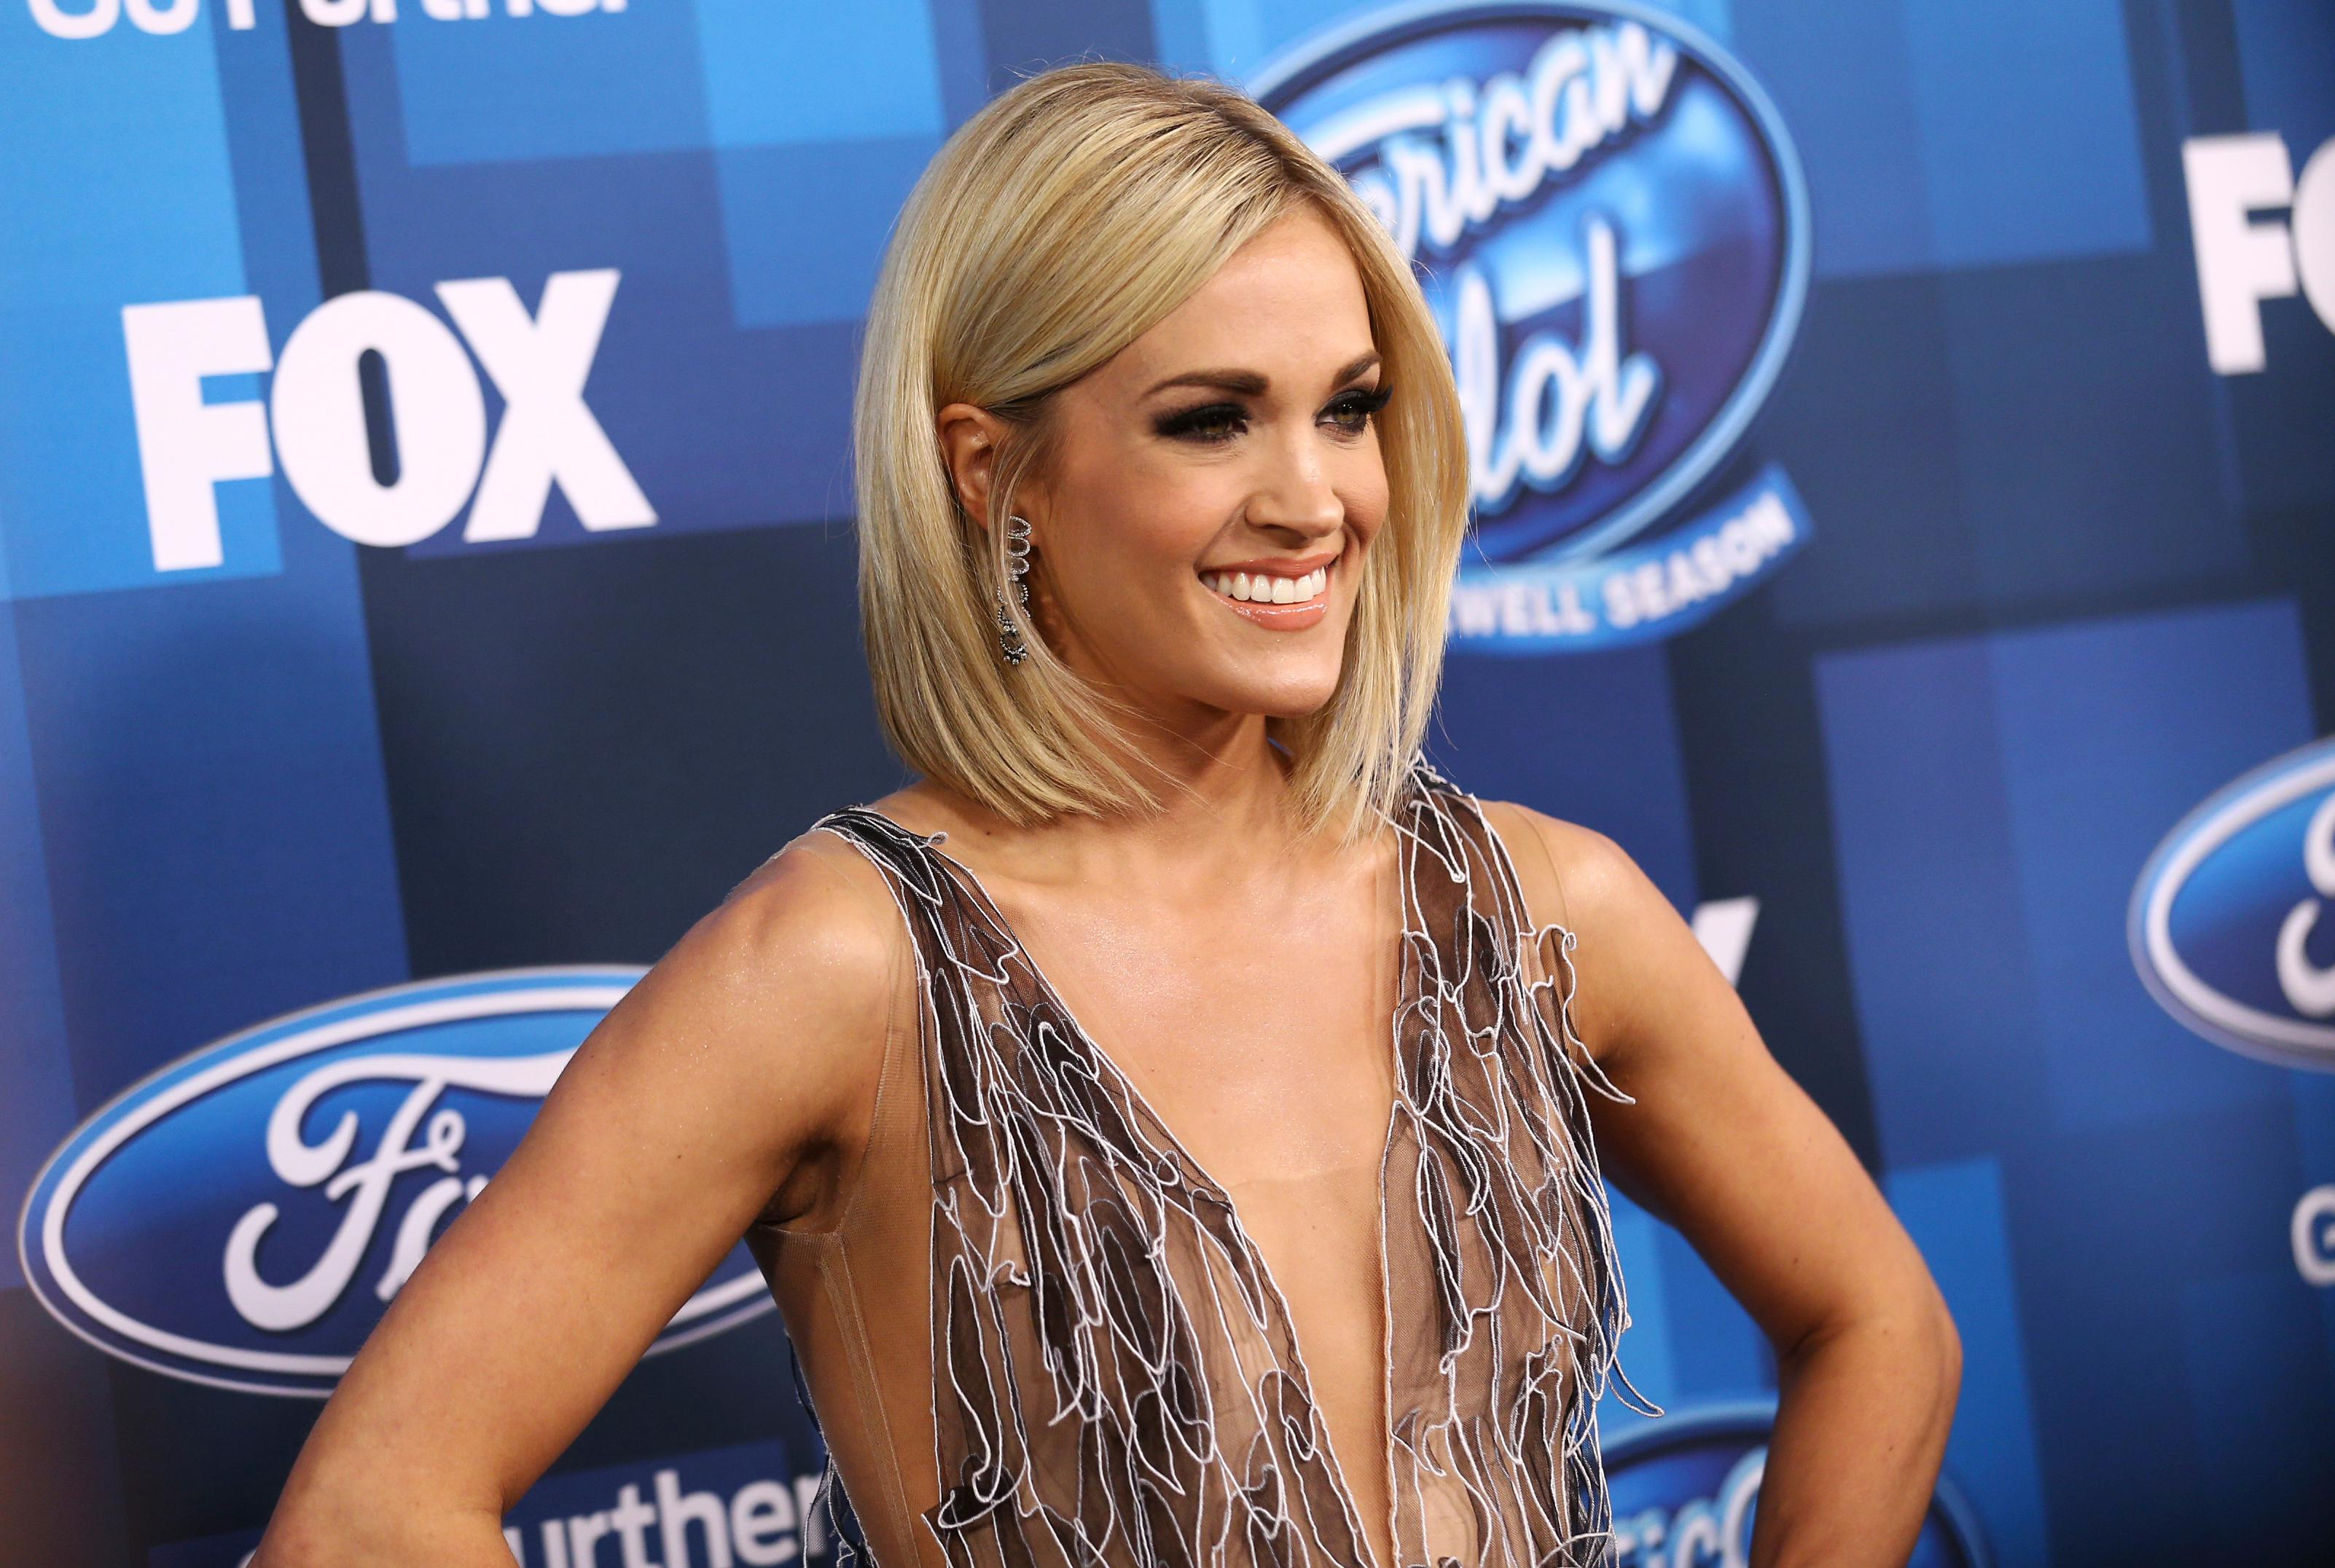 "FILE - In this Thursday, April 7, 2016, file photo, Carrie Underwood arrives at the ""American Idol"" farewell season finale at the Dolby Theatre in Los Angeles. ABC said it will revive ""American Idol"" after it has spent only one year off the air. The network announced Tuesday, May 9, 2017, that the music competition show that dominated television in the 2000s and minted stars like Underwood, Jennifer Hudson and Kelly Clarkson, will begin sometime in the next TV season. That season starts in September 2017. (Photo by John Salangsang/Invision/AP, File)"